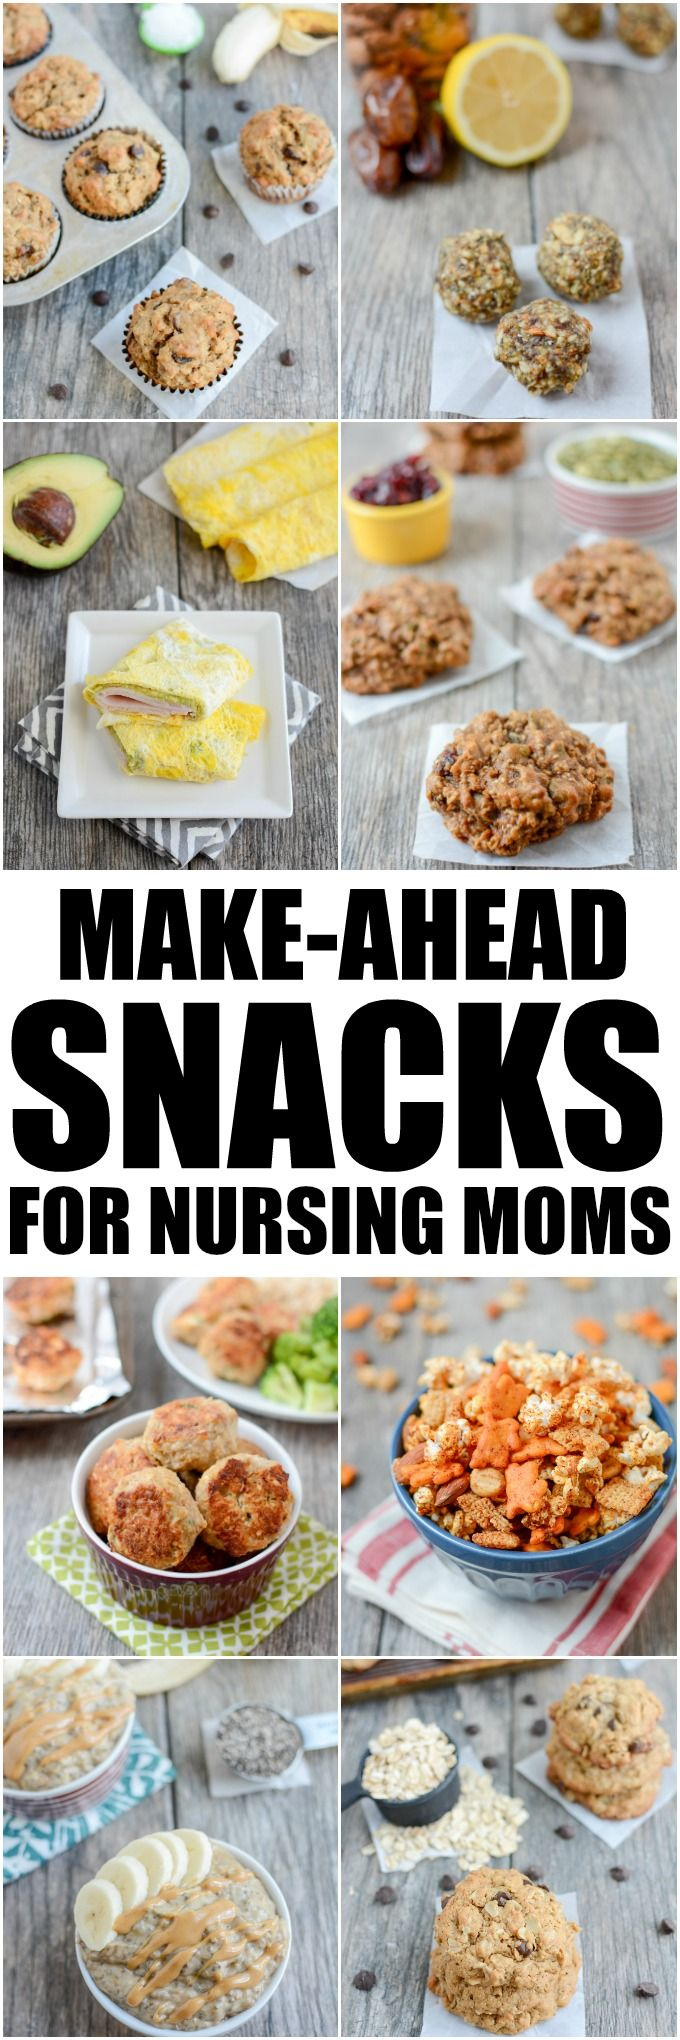 These Make-Ahead Snacks For Breastfeeding Moms are easy, healthy recipes to help keep your body fueled and energized while nursing.